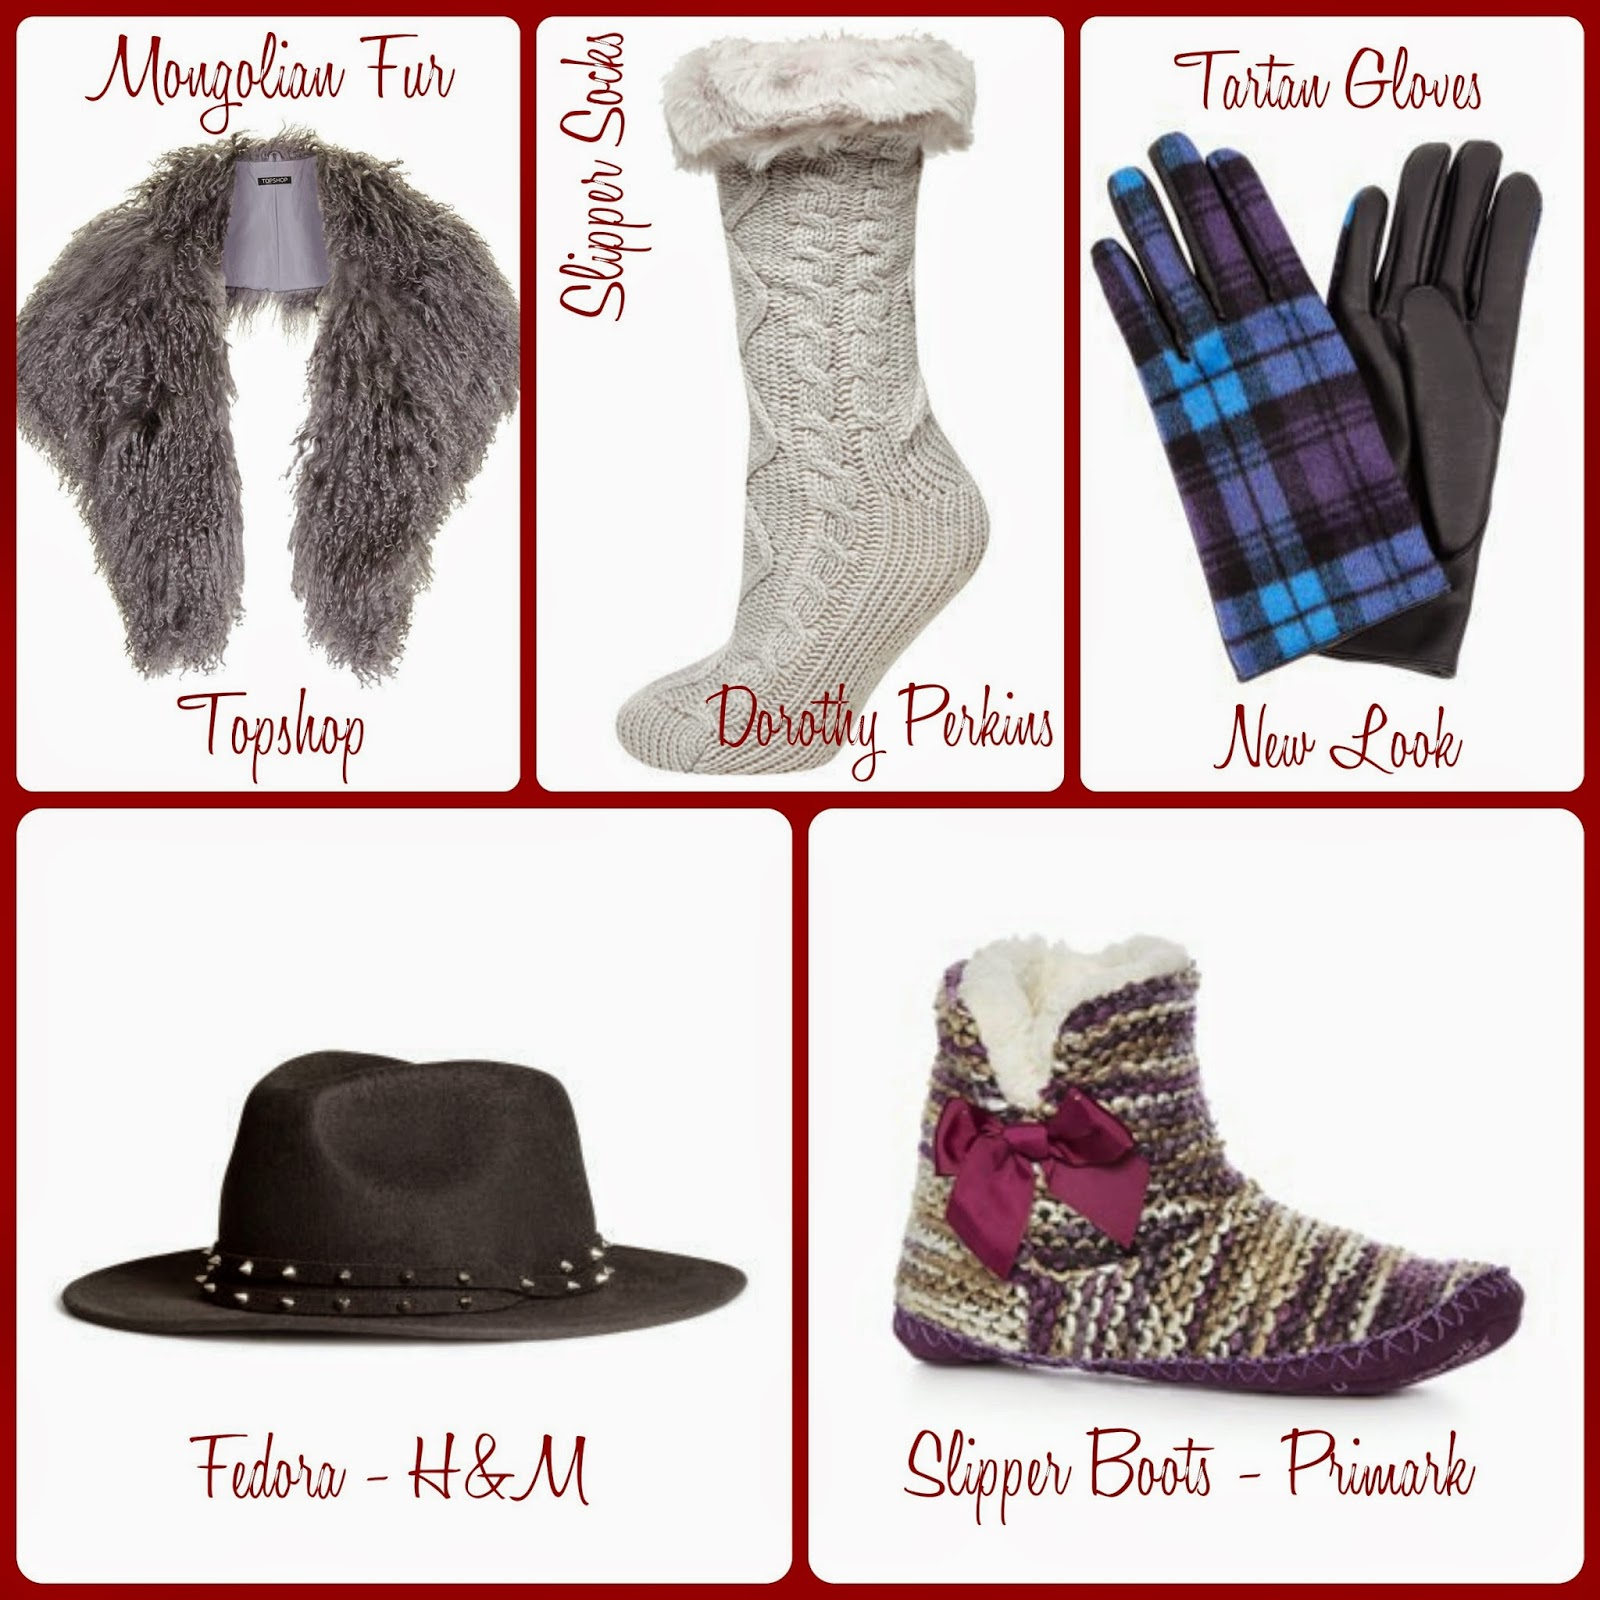 Winter Accessories Collage